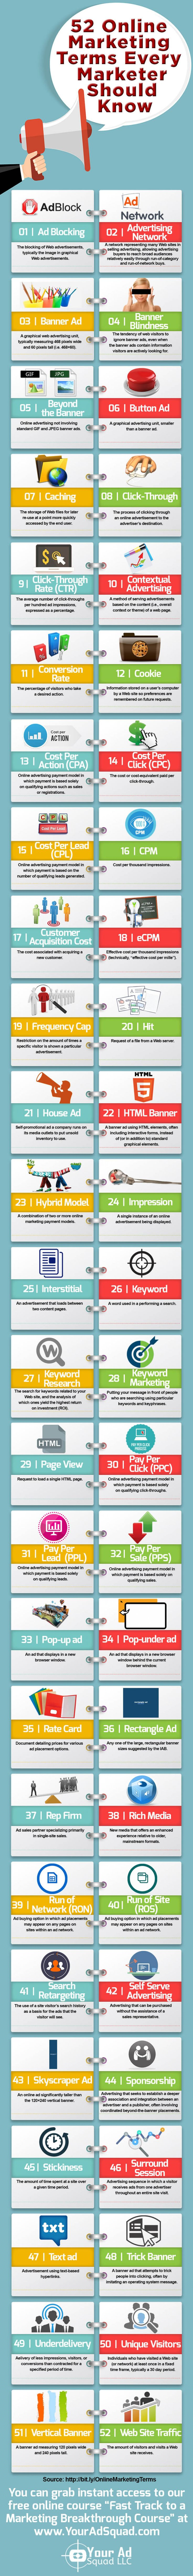 52 Online Marketing Terms You Should Know